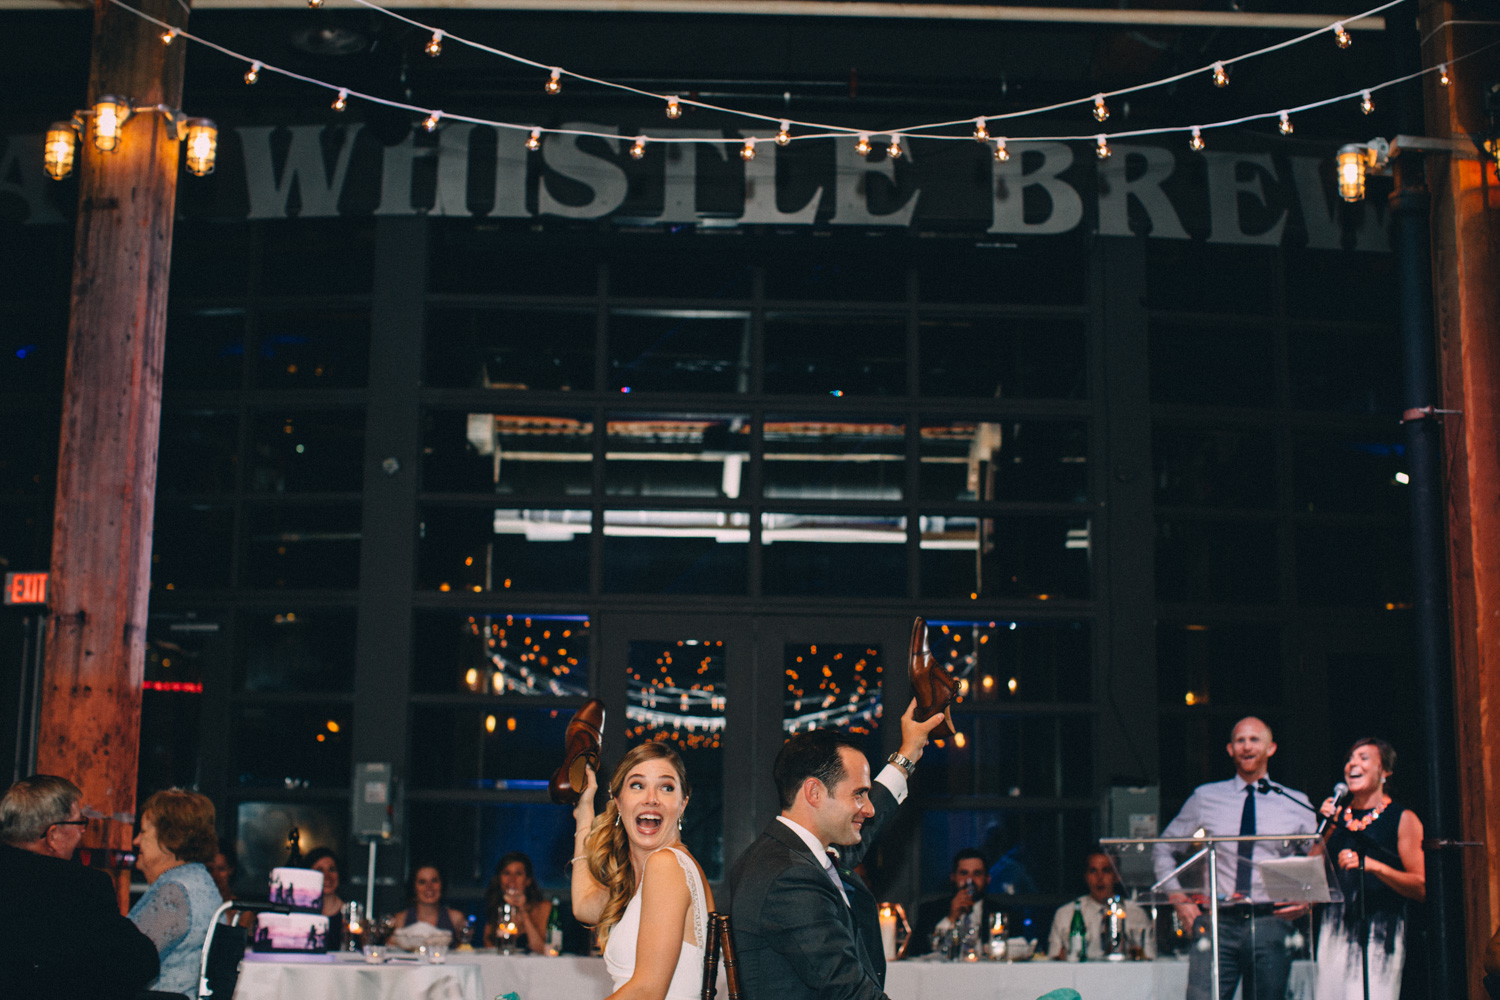 steam-whistle-brewery-wedding-photos-toronto-wedding-photography-by-sam-wong-of-artanis-collective_01054